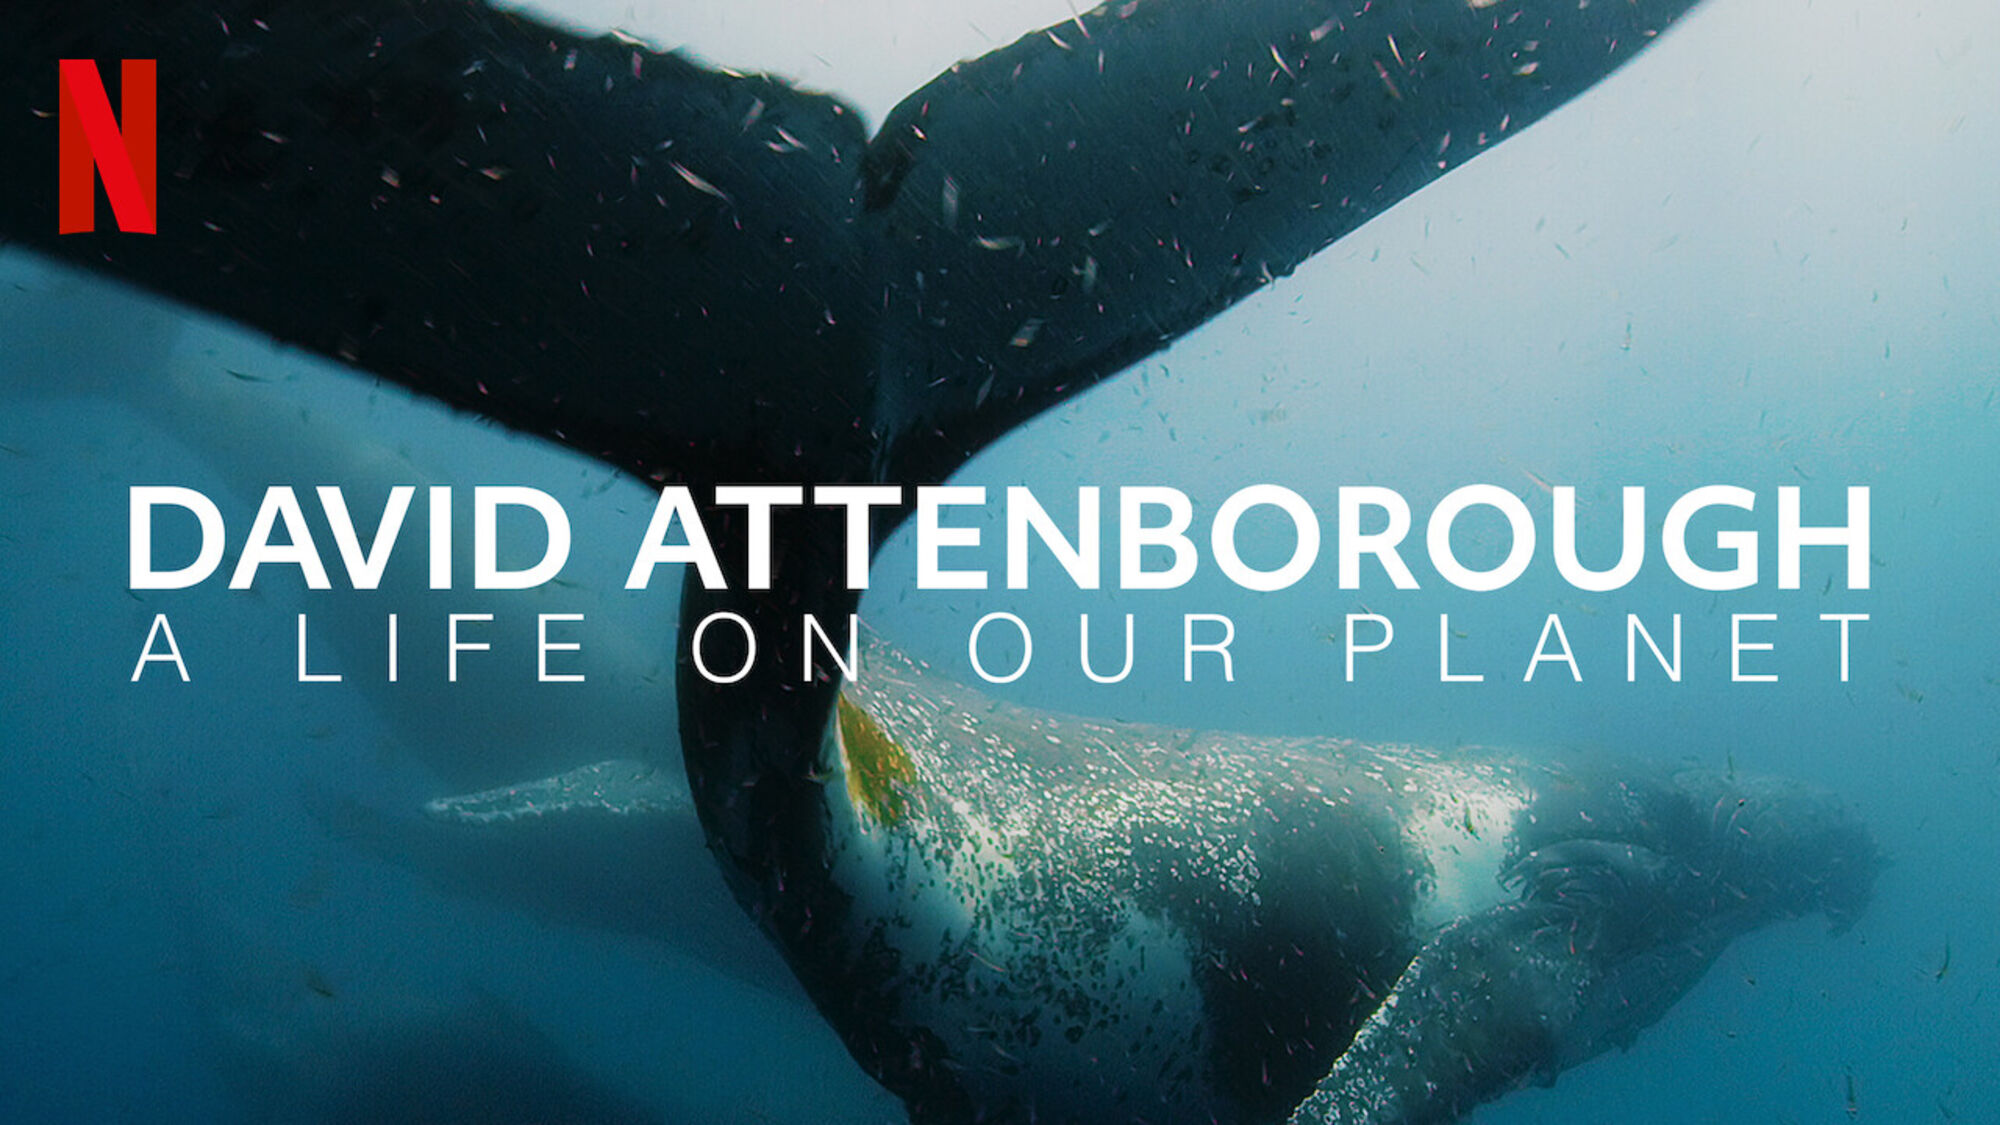 David Attenborough: A Life on Our Planet (2020) | Writing for sharing